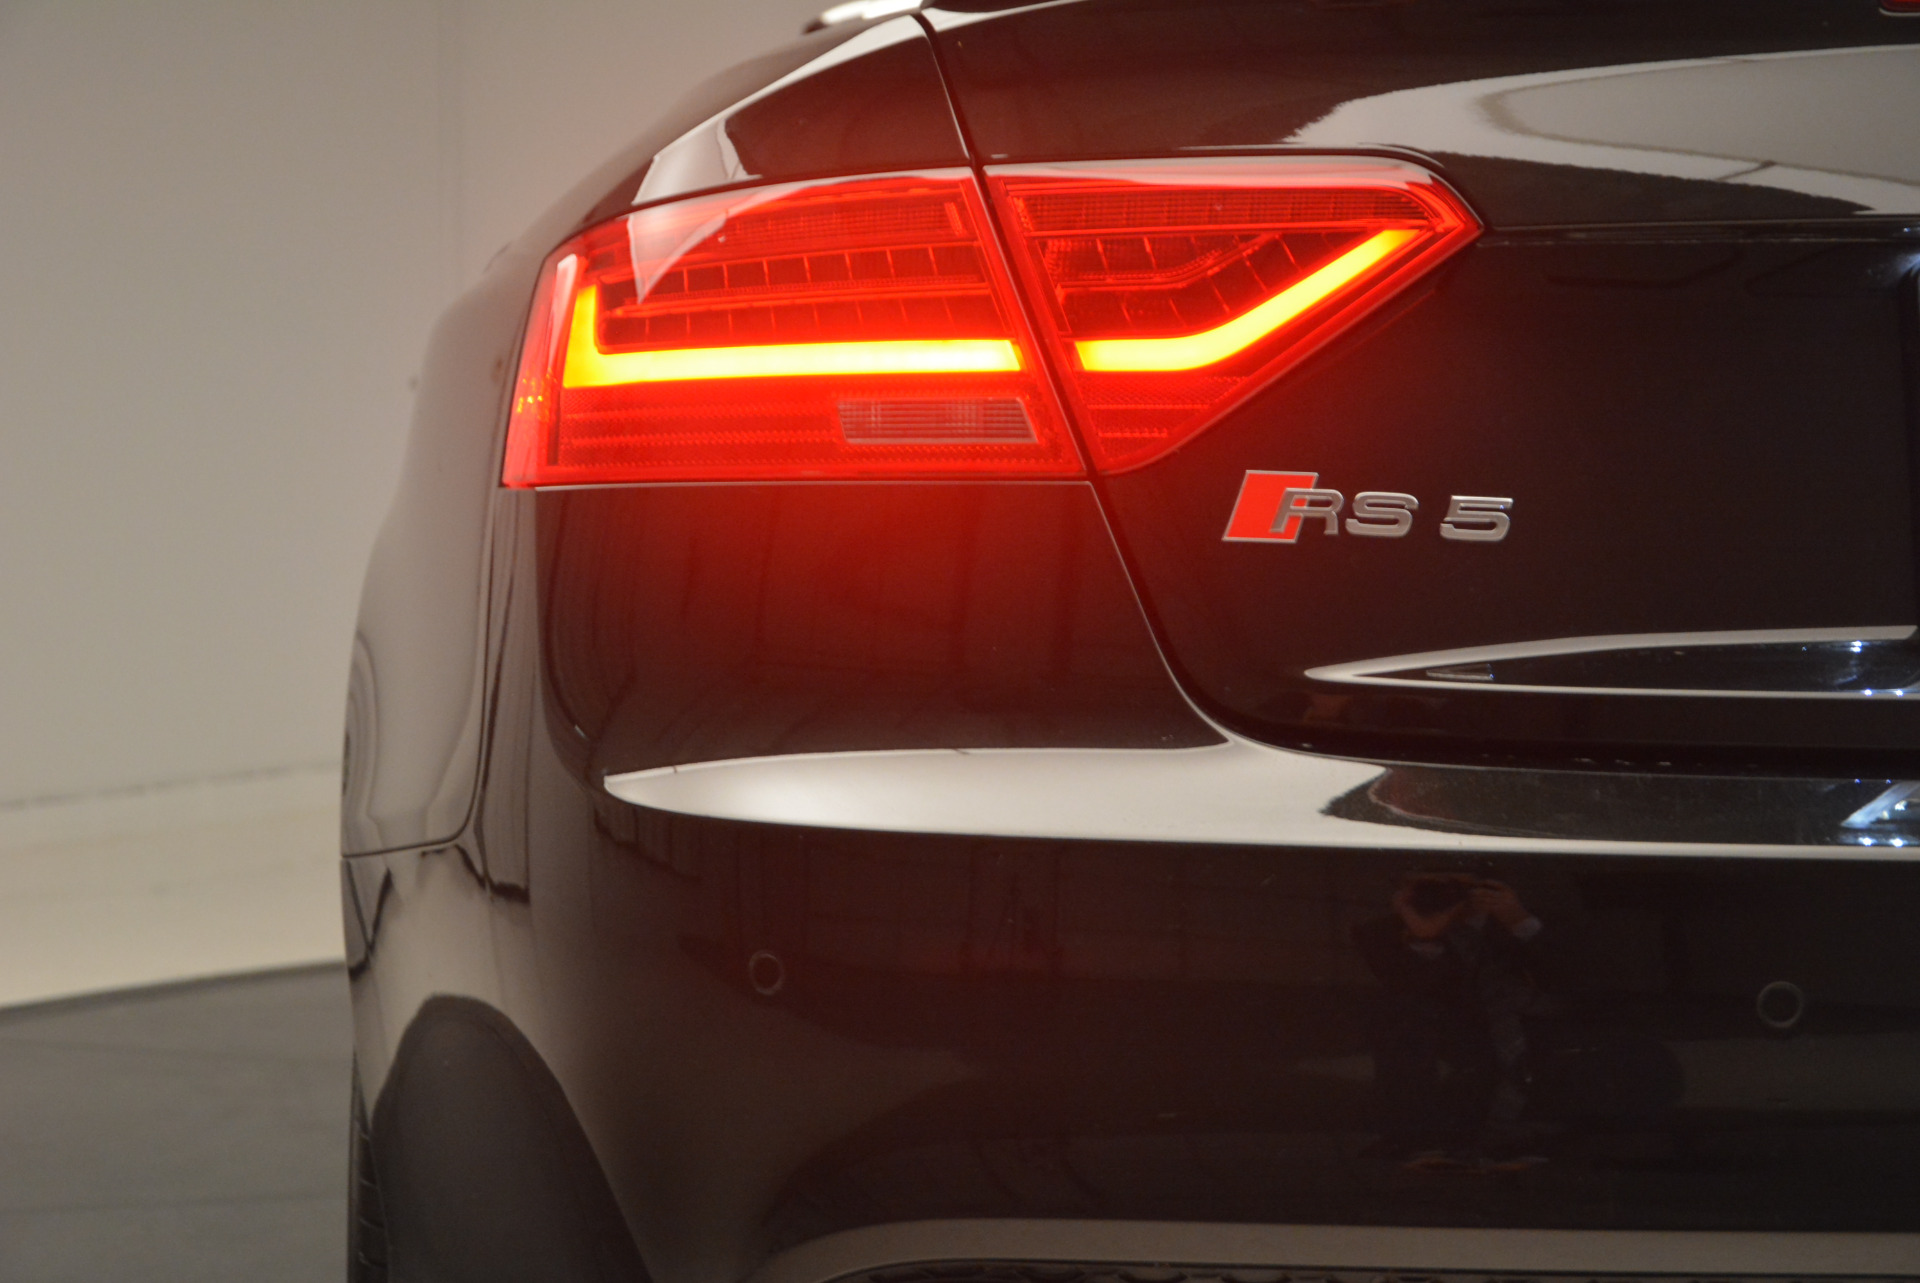 Used 2014 Audi RS 5 quattro For Sale In Greenwich, CT 1149_p26